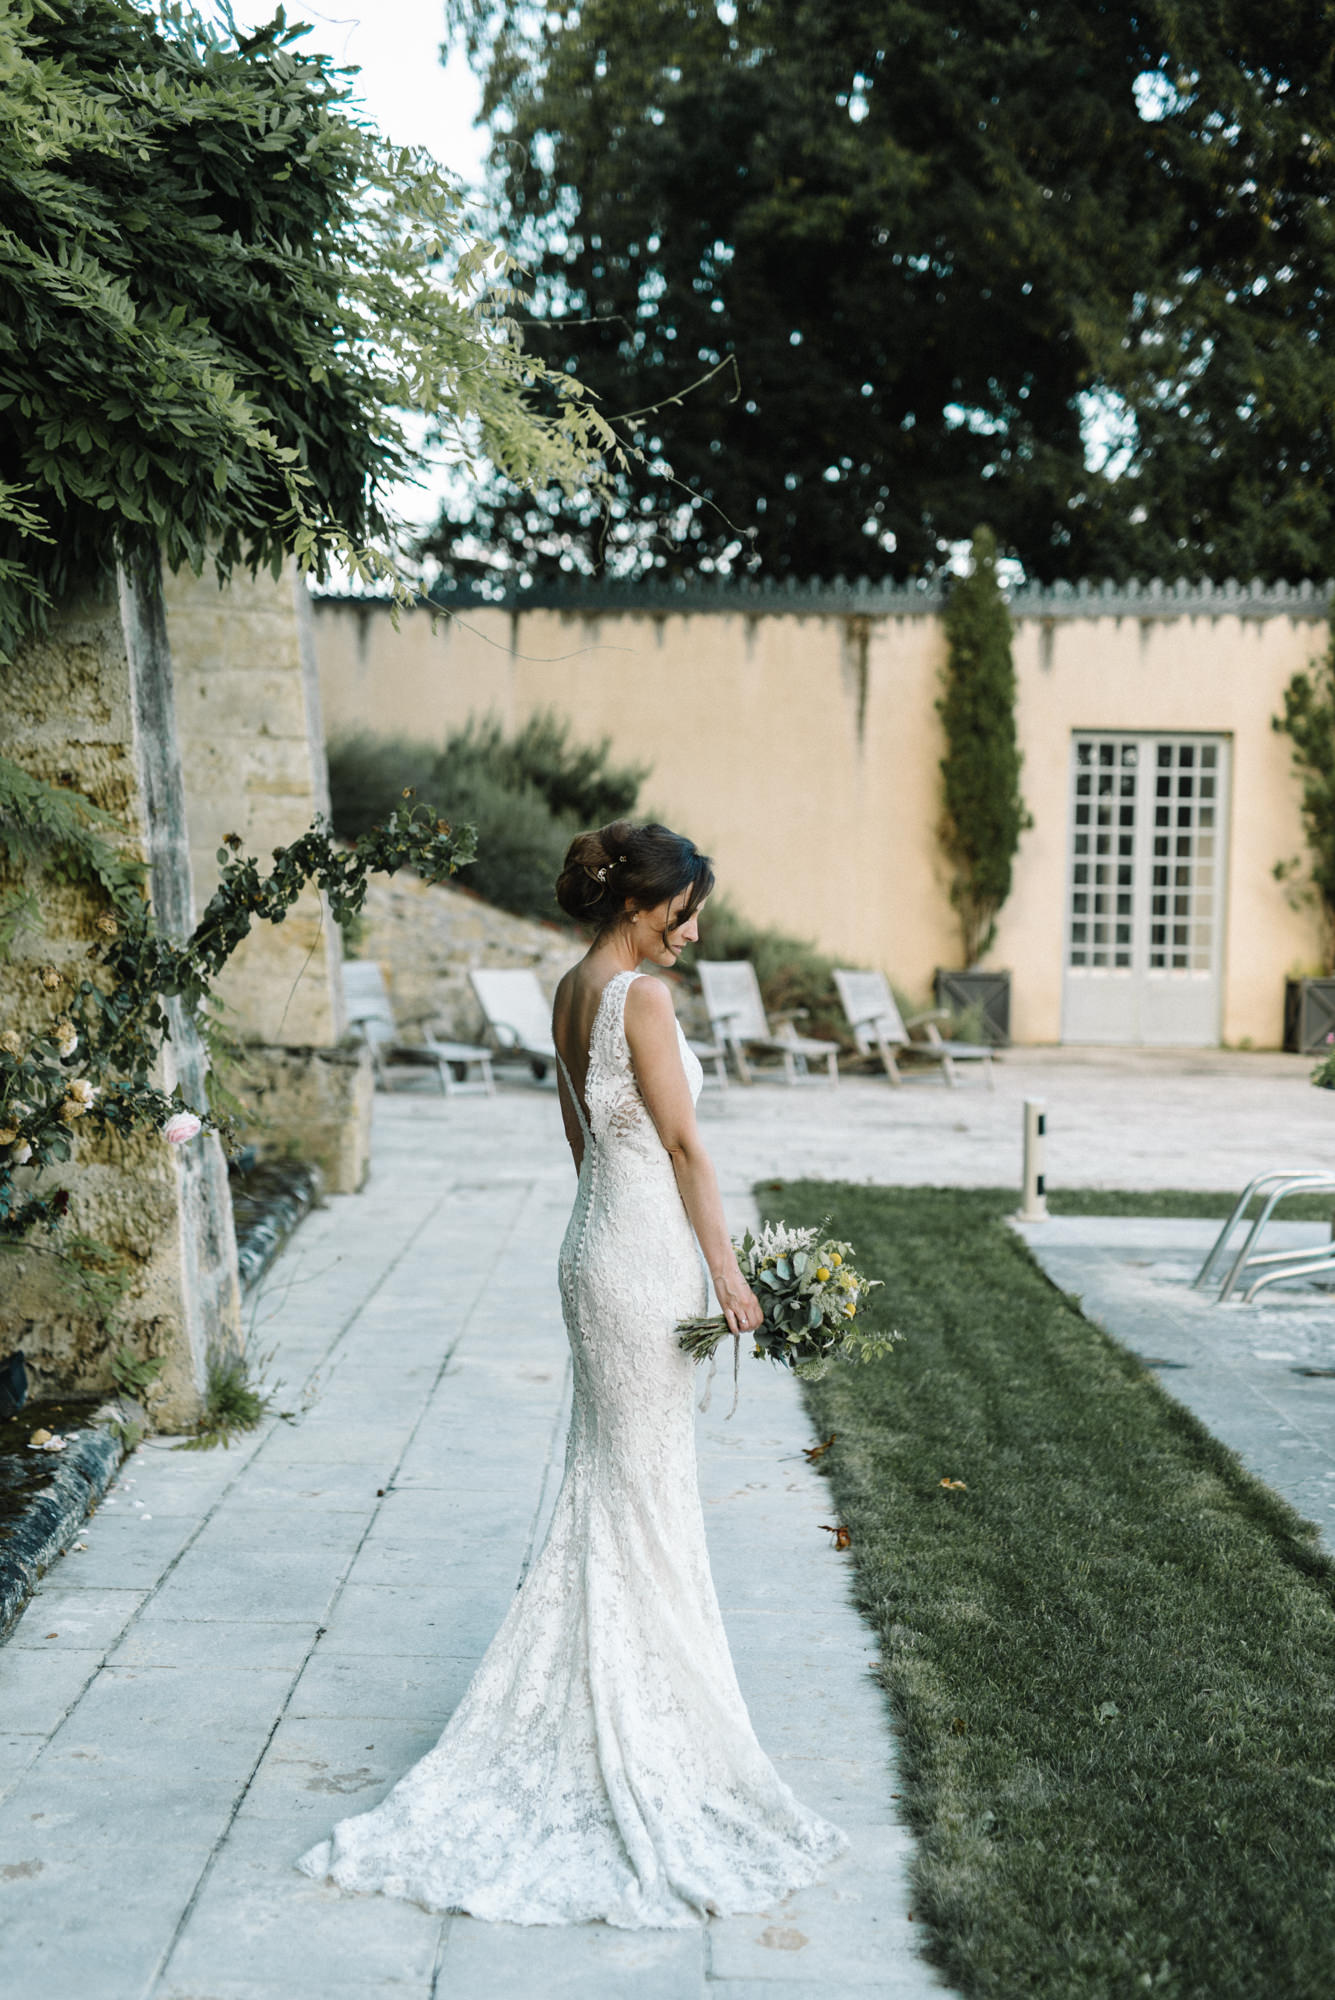 willybroussephotography-wedding-loirevalley-bidaudieres-laura-mathieu-92